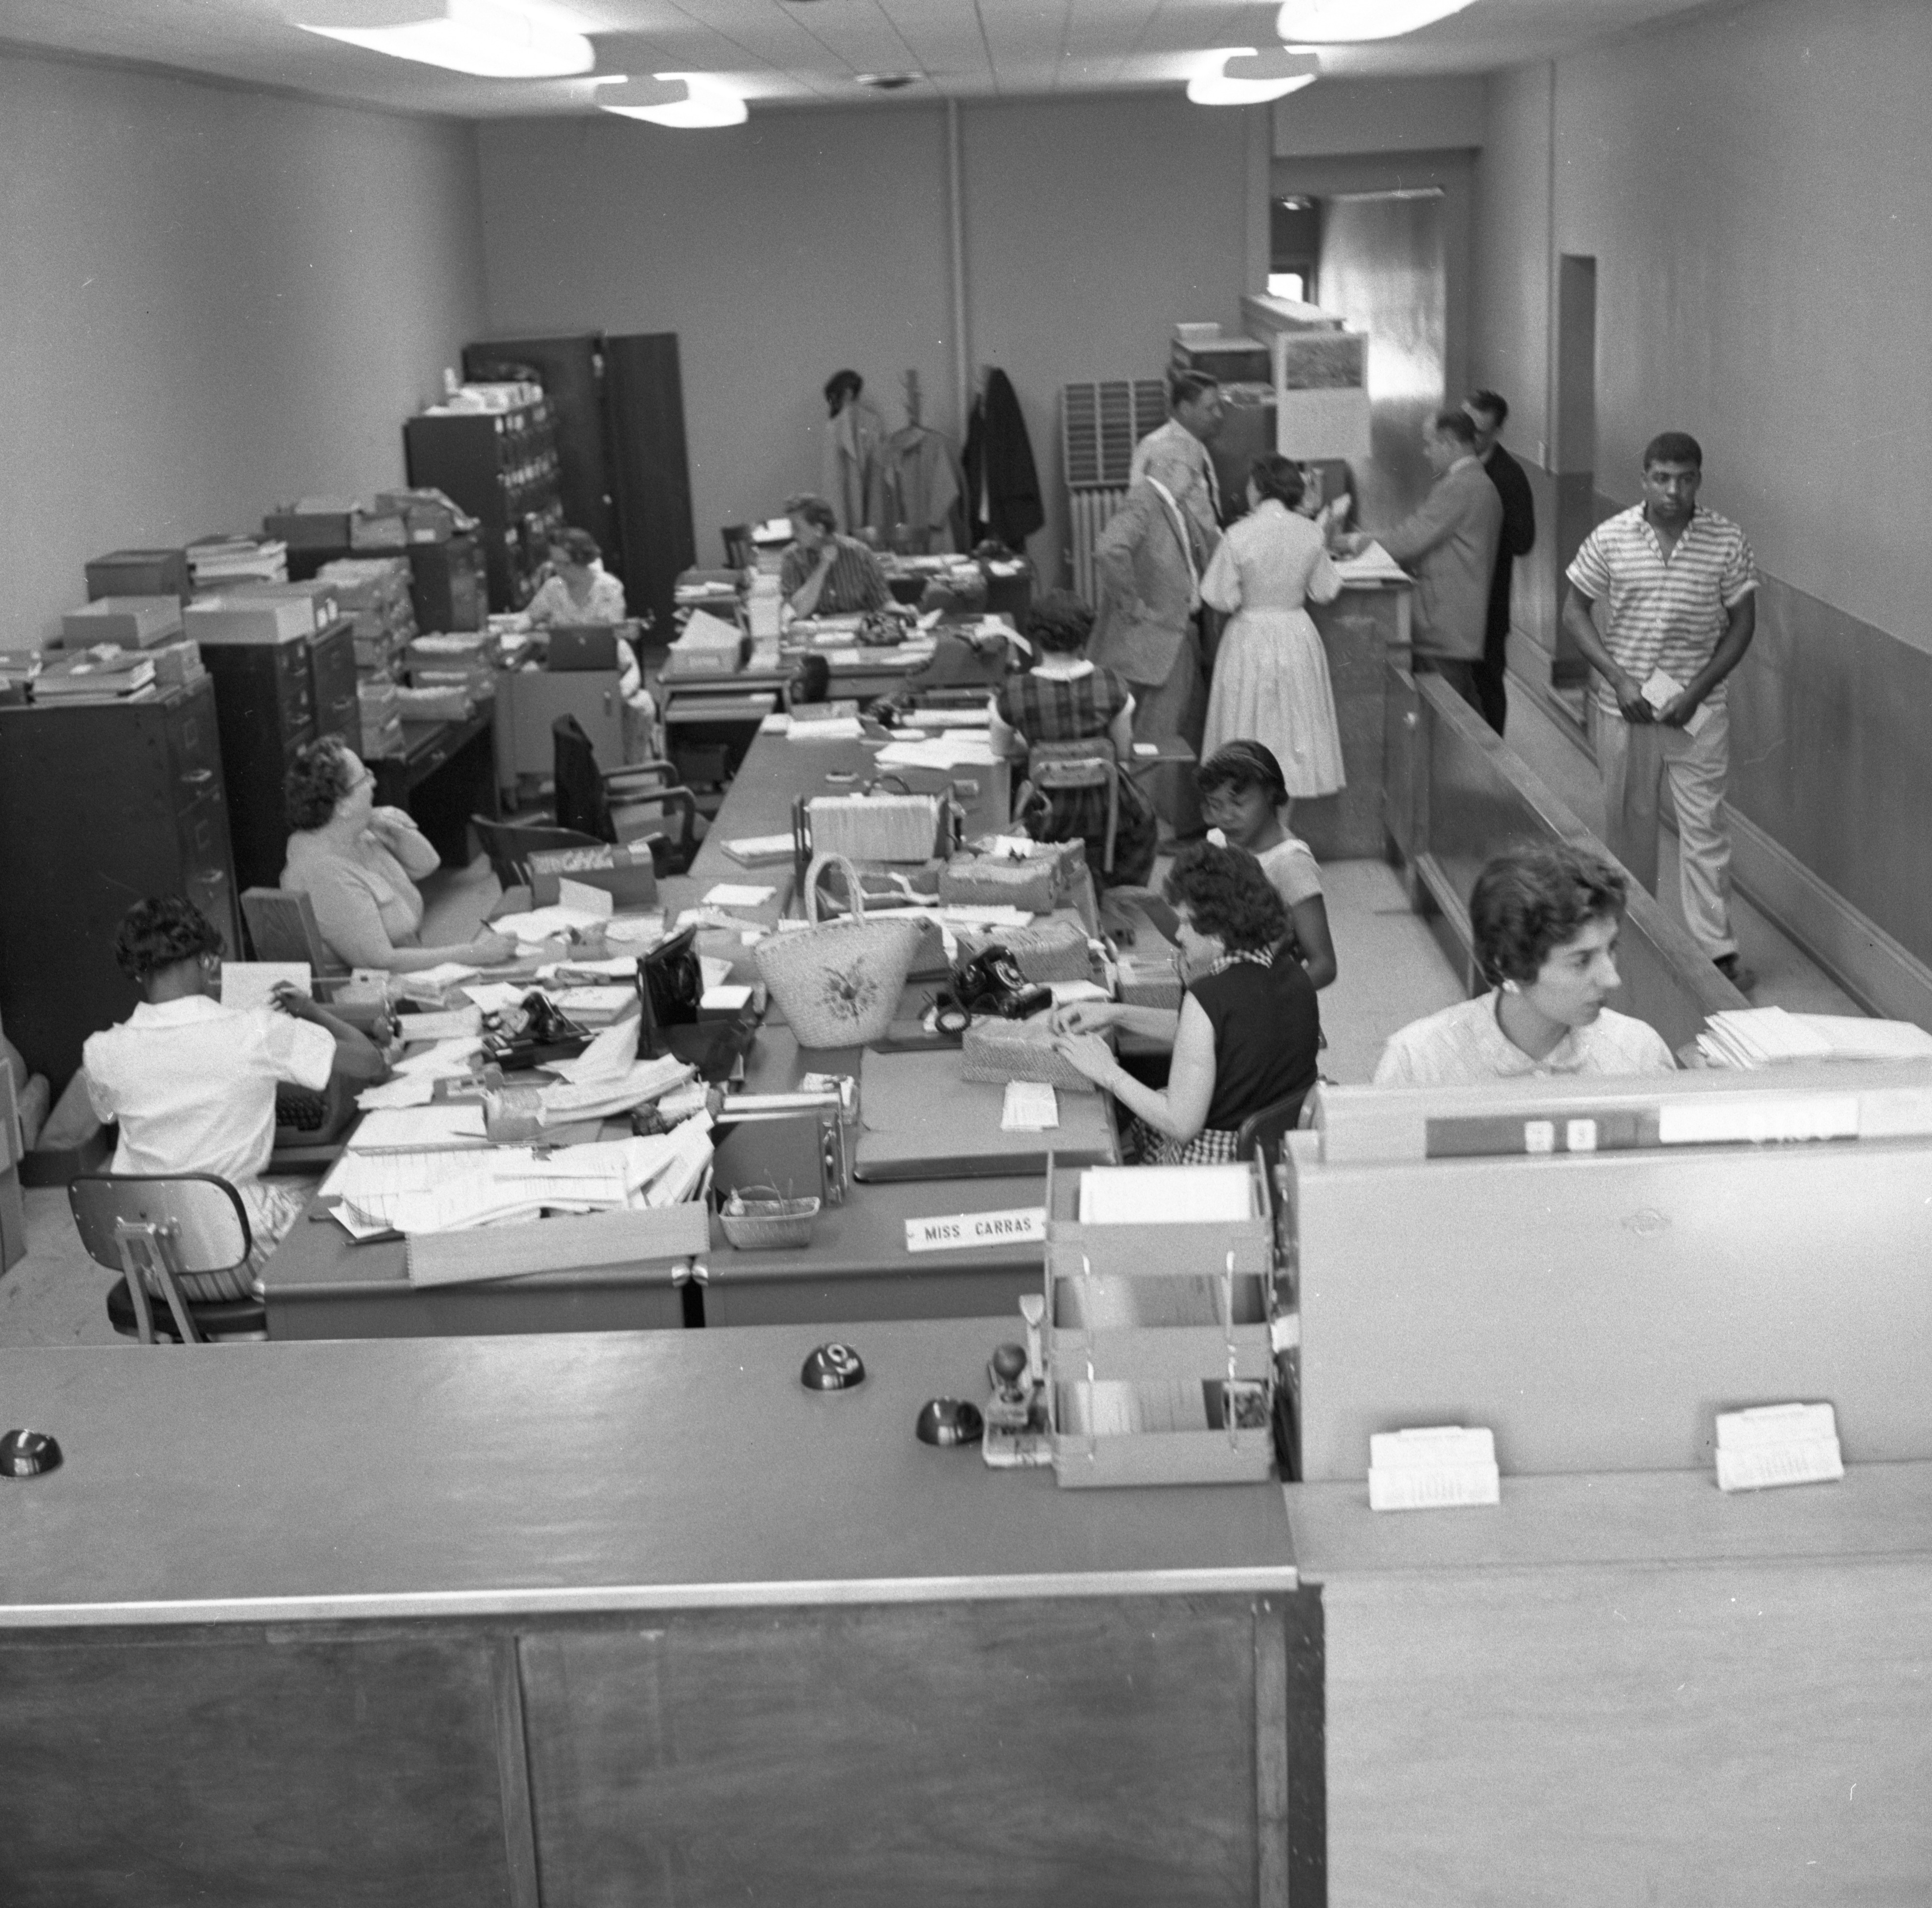 Ann Arbor Municipal Court Office, May 1958 image